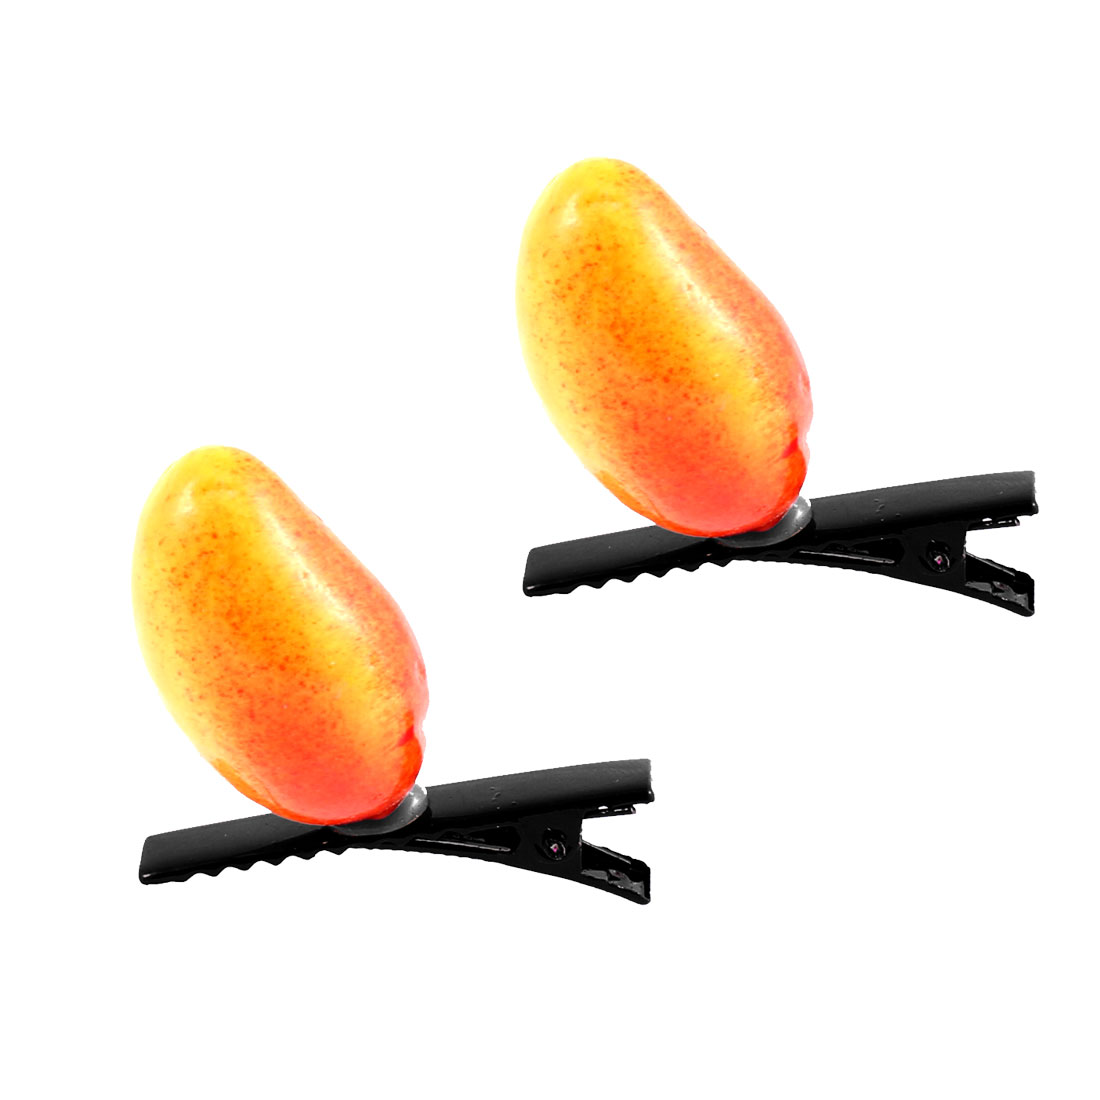 Lady Woman Plastic Fruit Detail Party Alligator Hair Clip Barrette Orange Pair